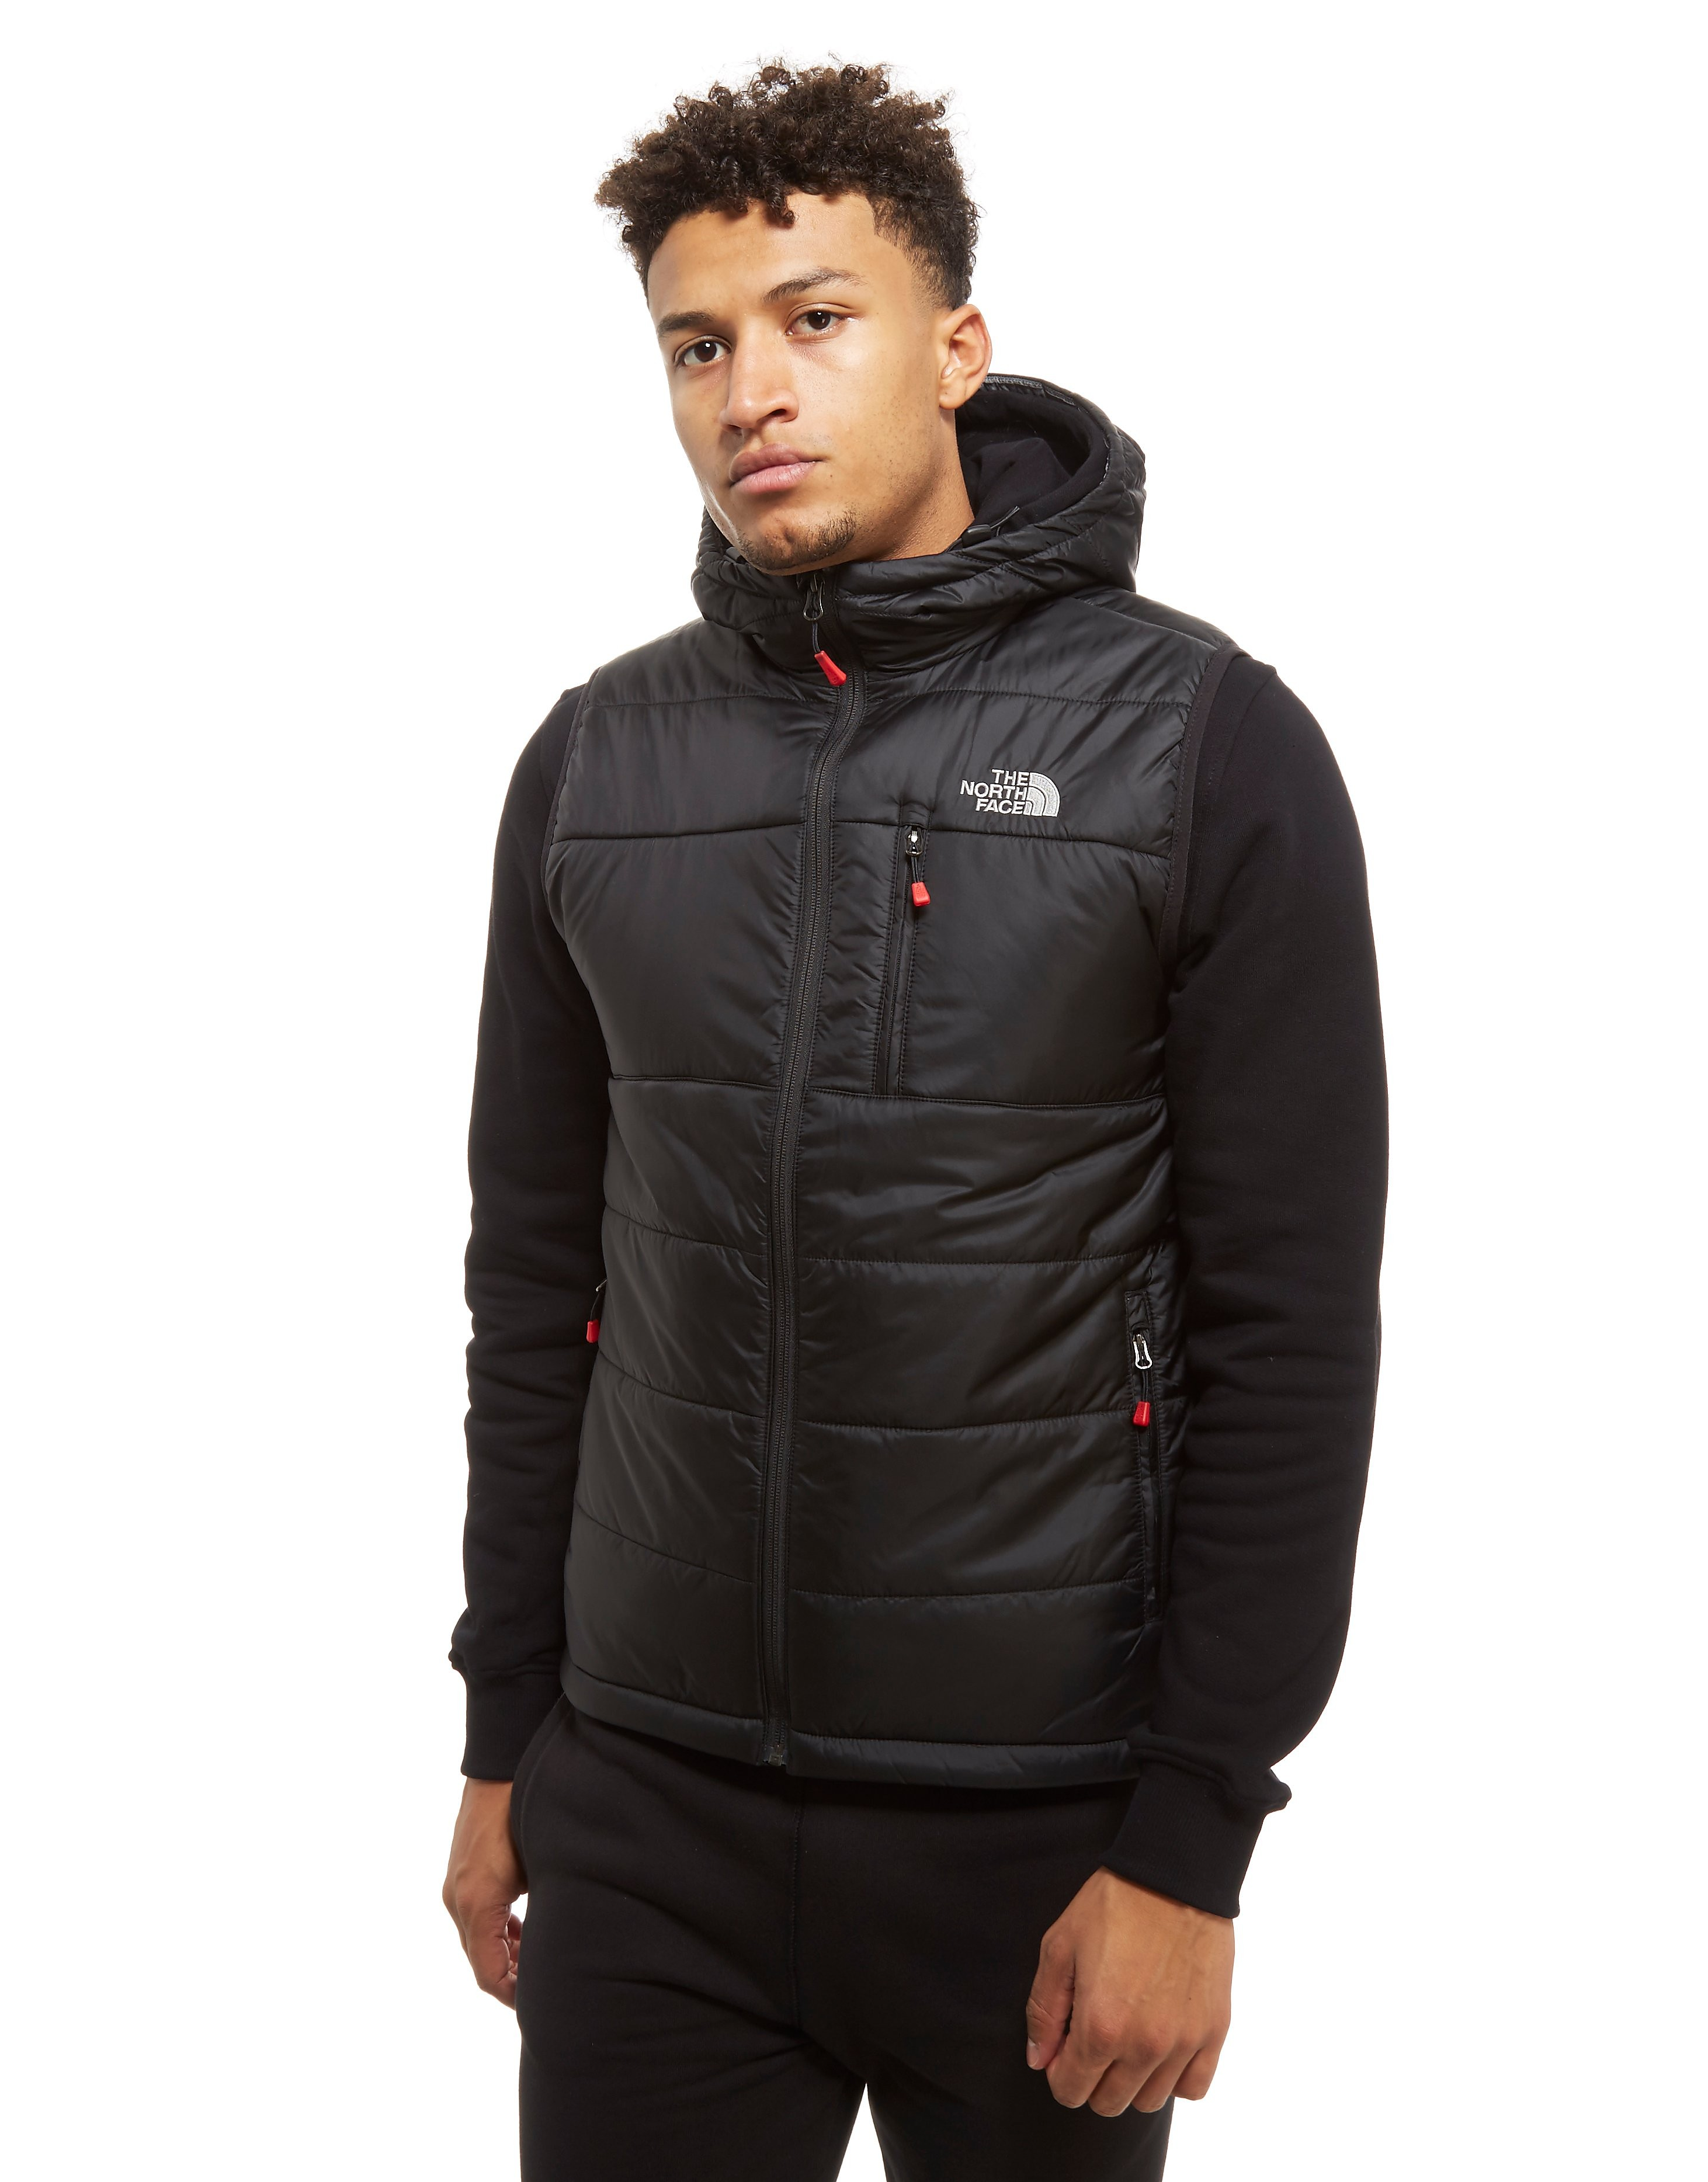 The North Face chaleco Khotan